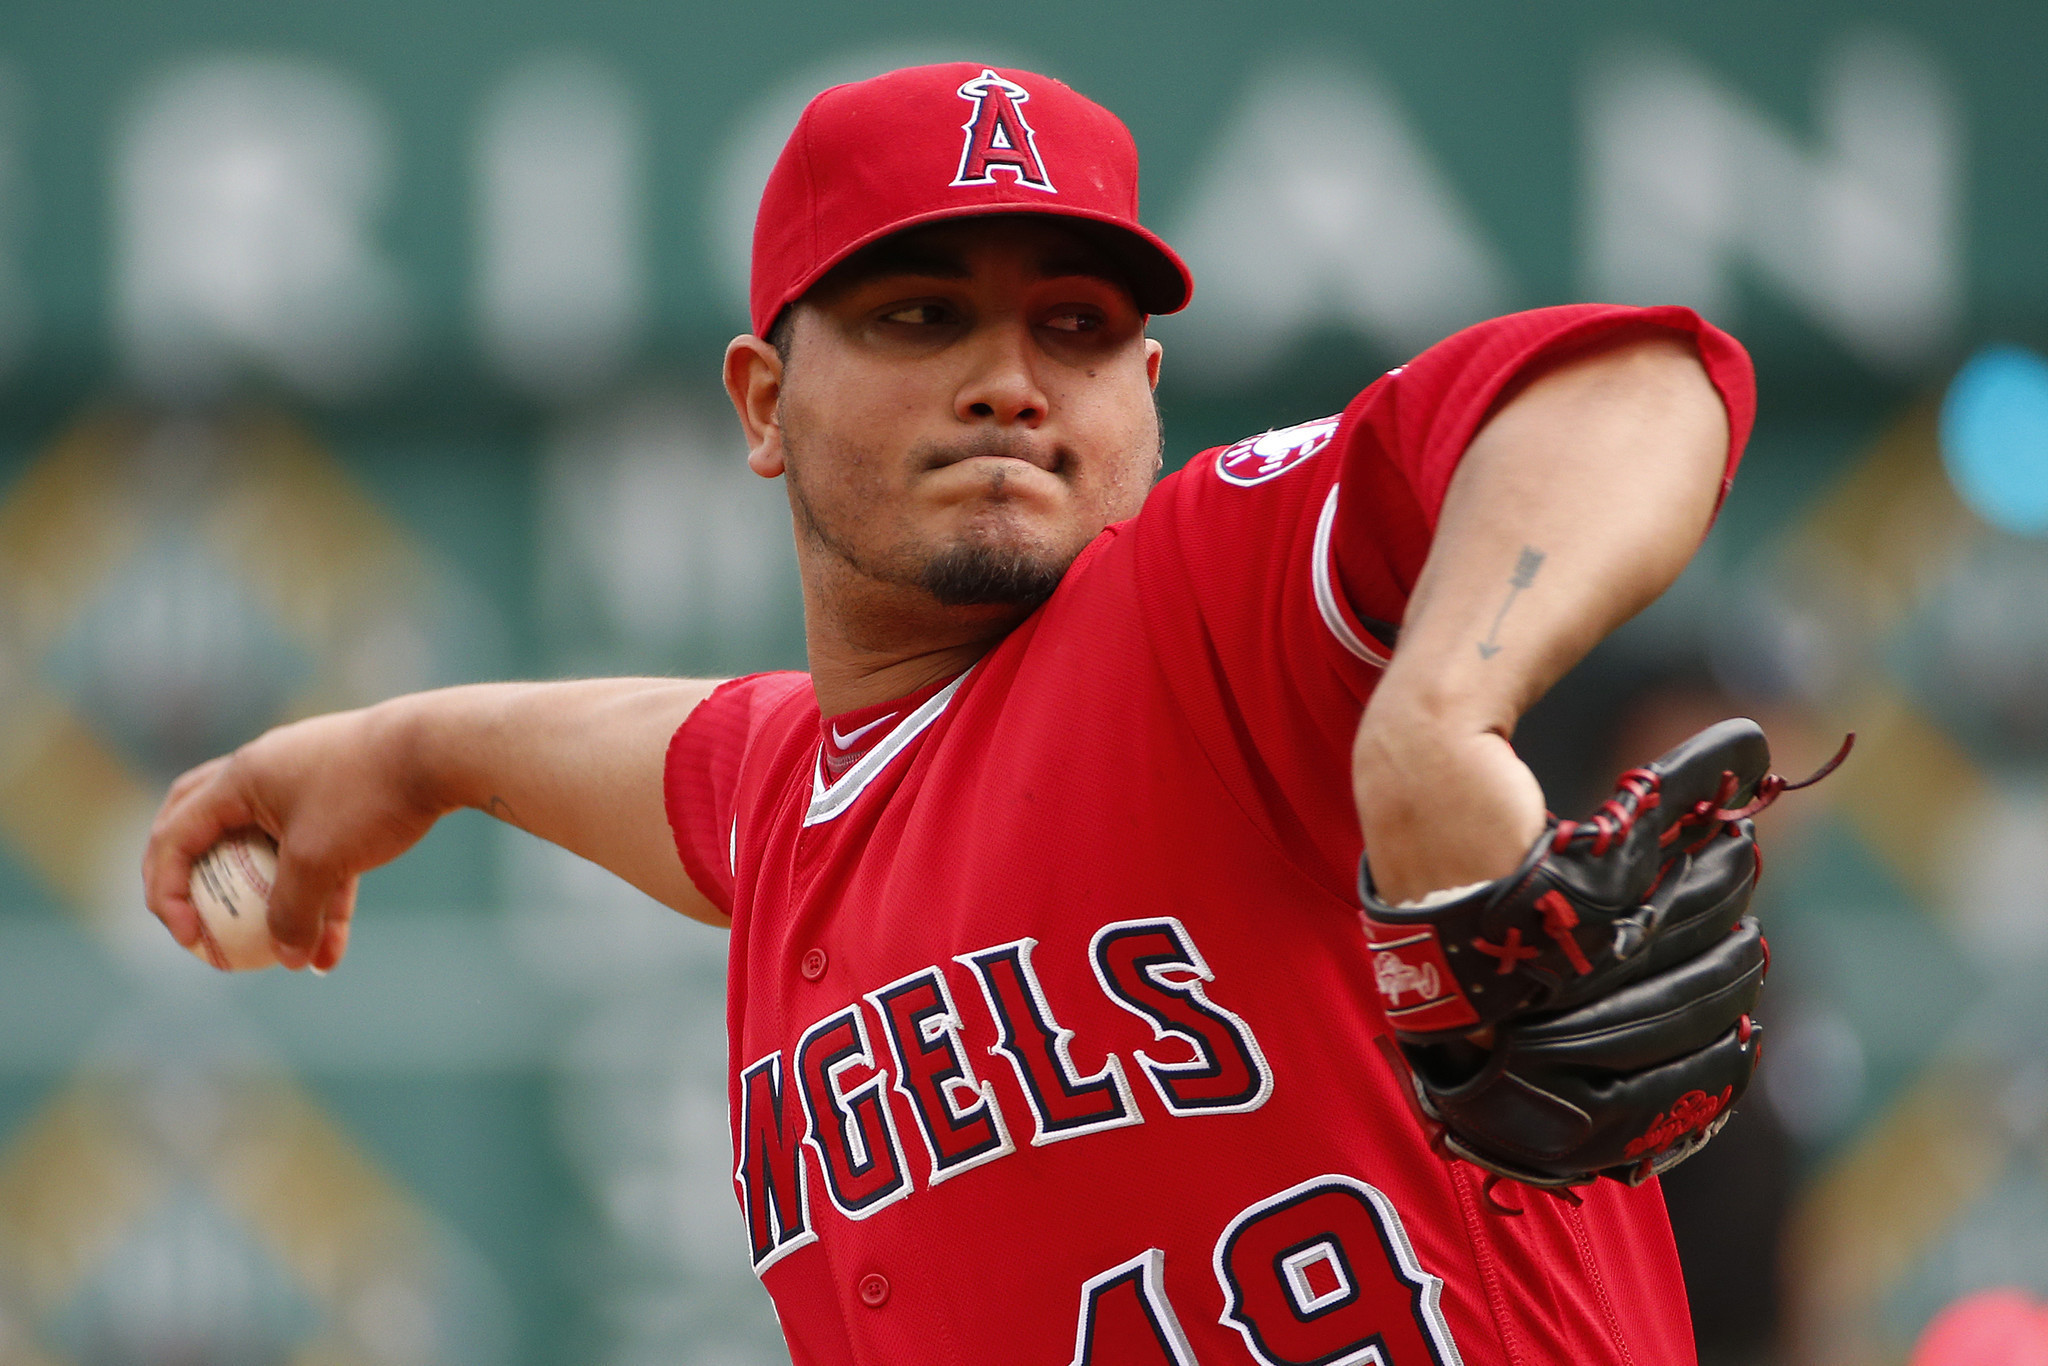 Sd-sp-padres-offseason-league-roundup-jhoulys-chacin-20161223